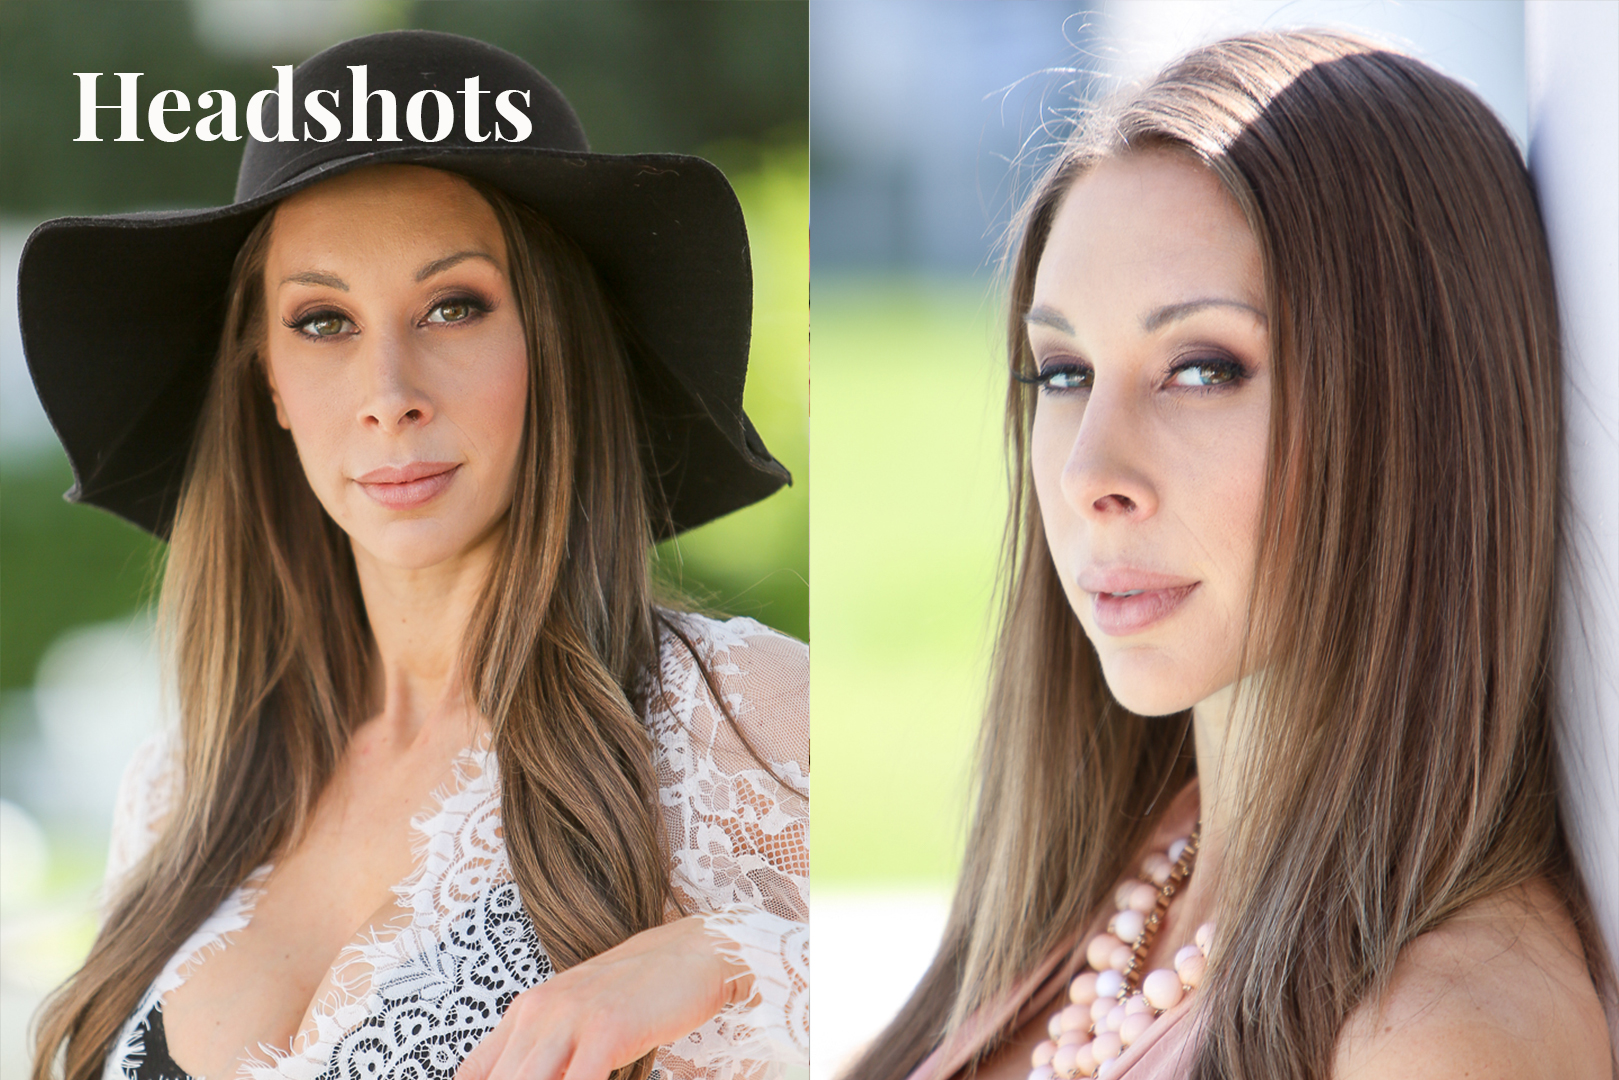 Las Vegas Headshot Photographer